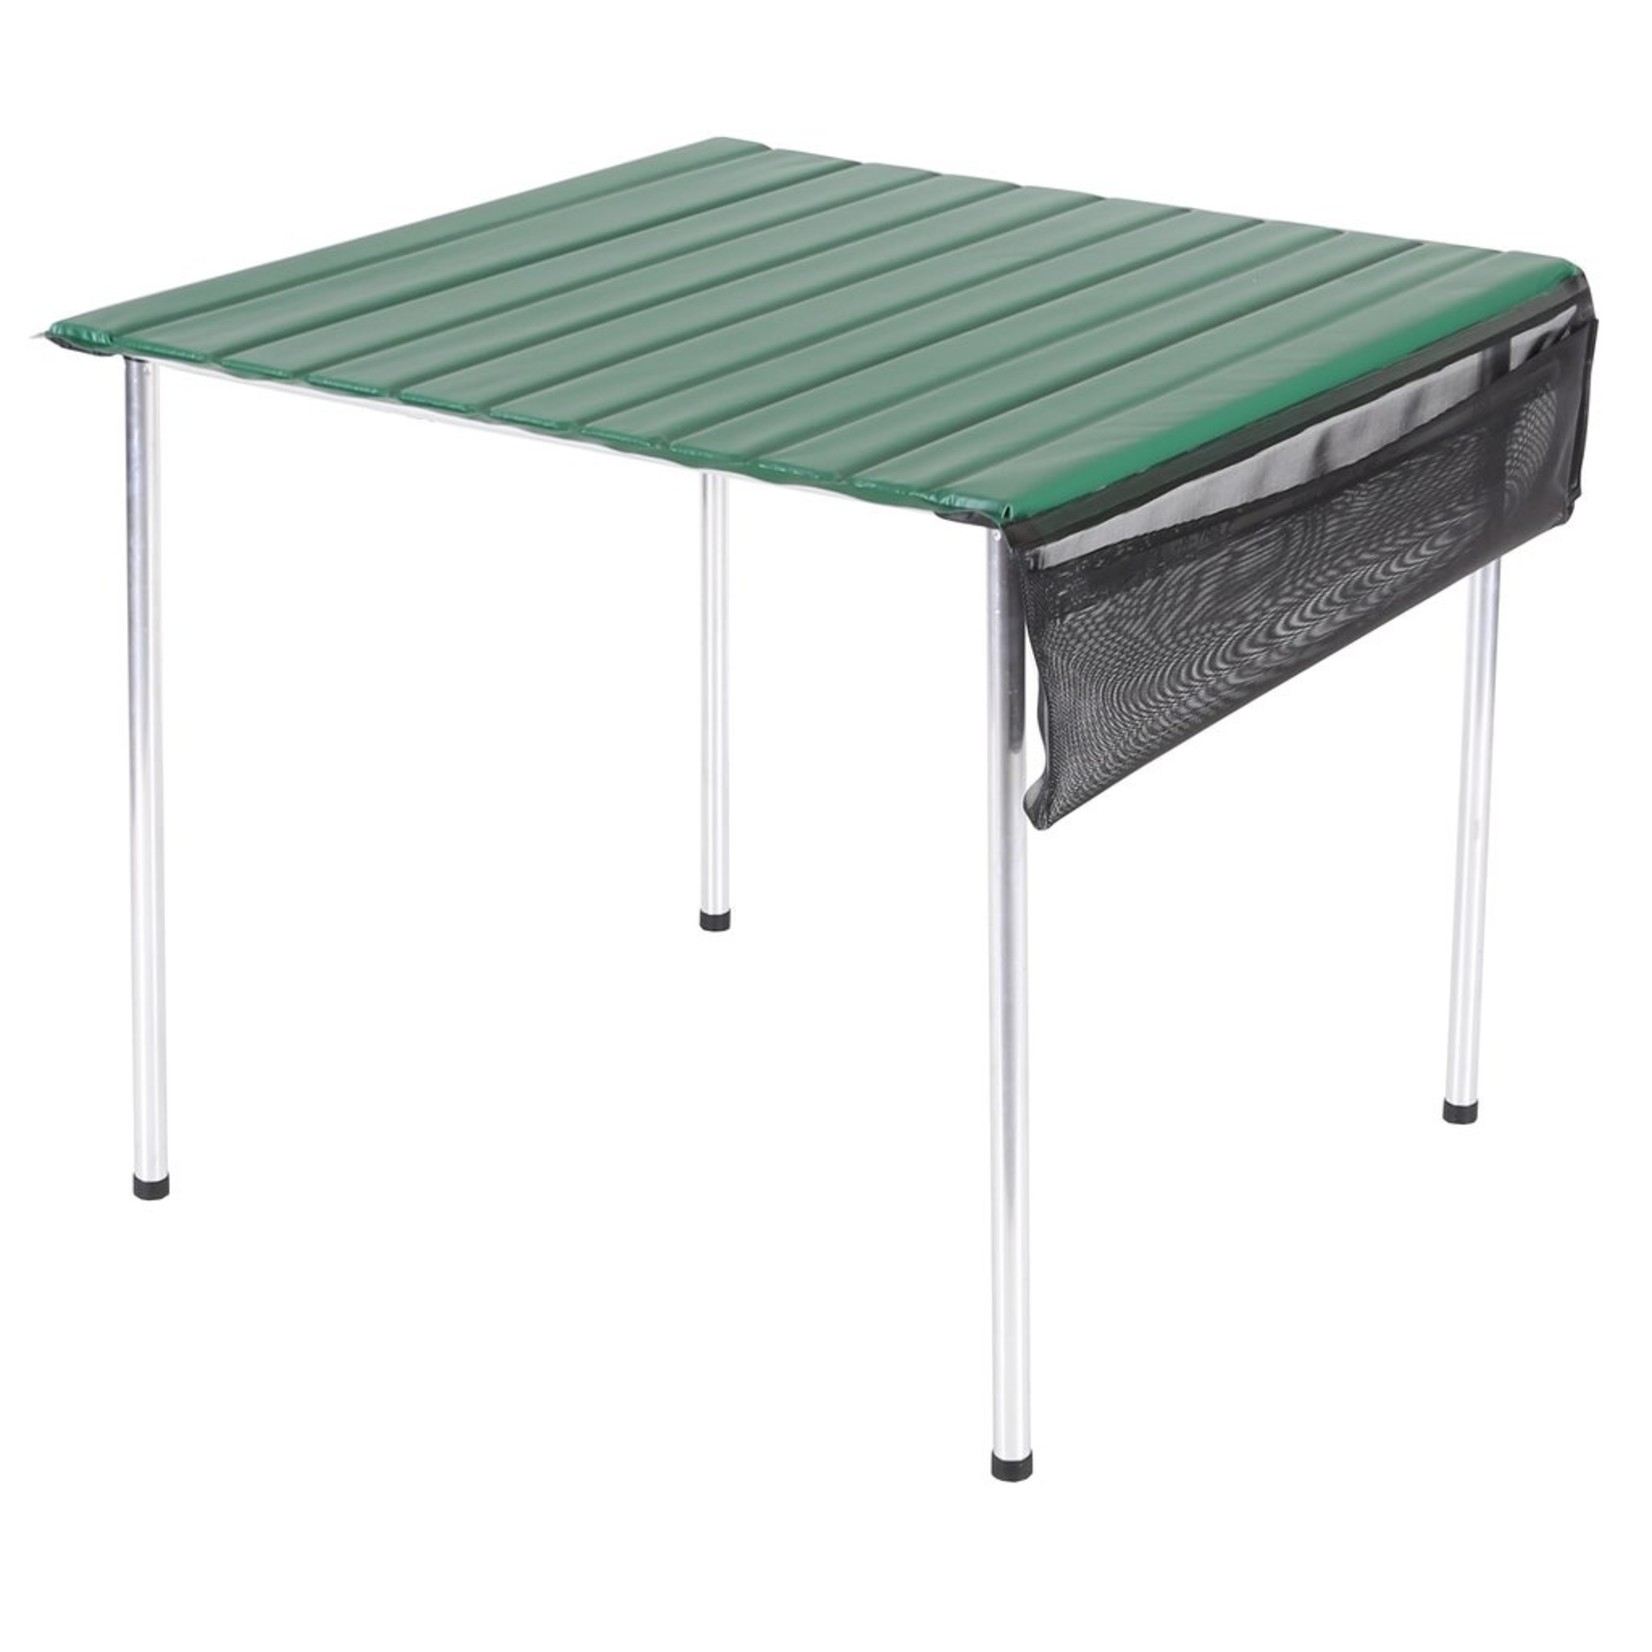 Camptime Camptime Roll-O-Table